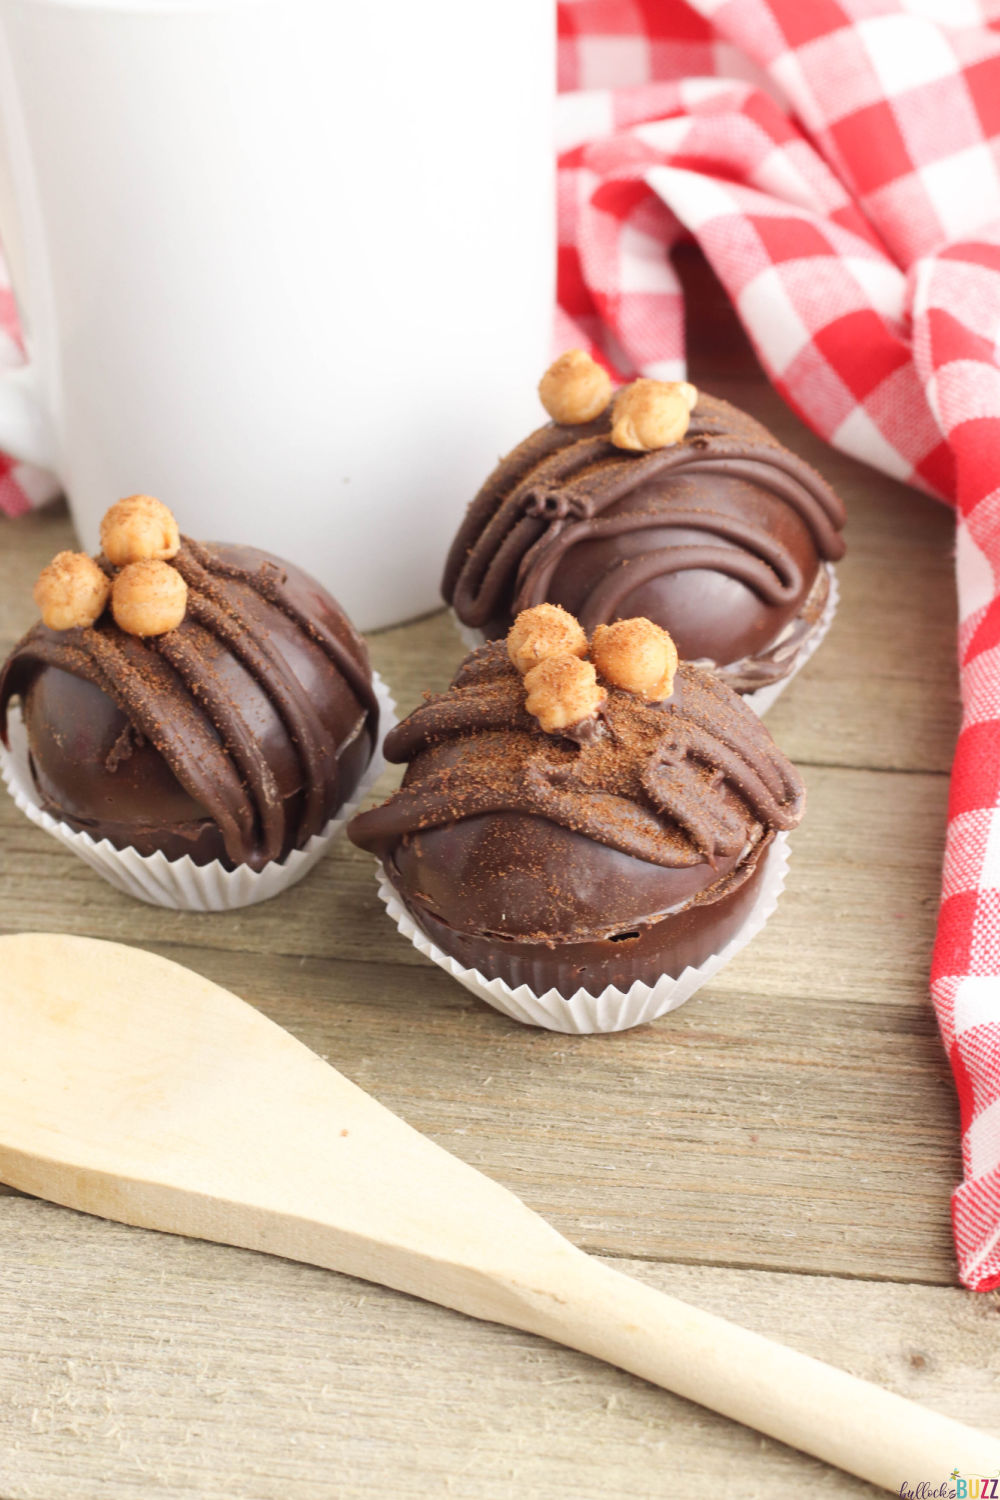 This delectable Caramel Mocha Coffee Bomb recipe is made with delicious chocolate, espresso mix, and caramel for a scrumptiously warm and delicious drink. #coffeebomb #espressobomb #recipes #caramelmocha #coffee